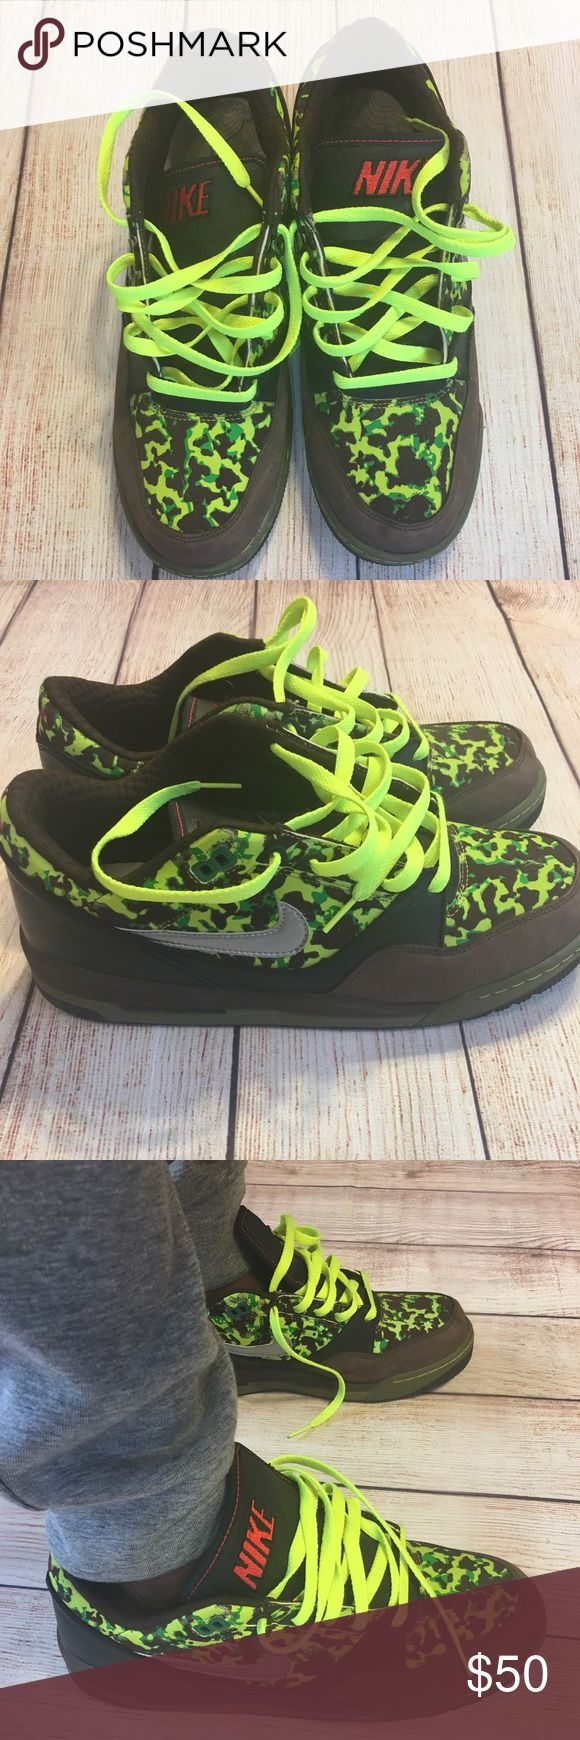 Nike Camo Lowtop Sneakers Used like new Nike Camo shoes. Kind of an obscure design but definitely head turners. Pair these with some nice jeans or joggers and be fresh to death. Shoes were manufactured back in '07 so they're pushing 10 years old! Nike Shoes Sneakers